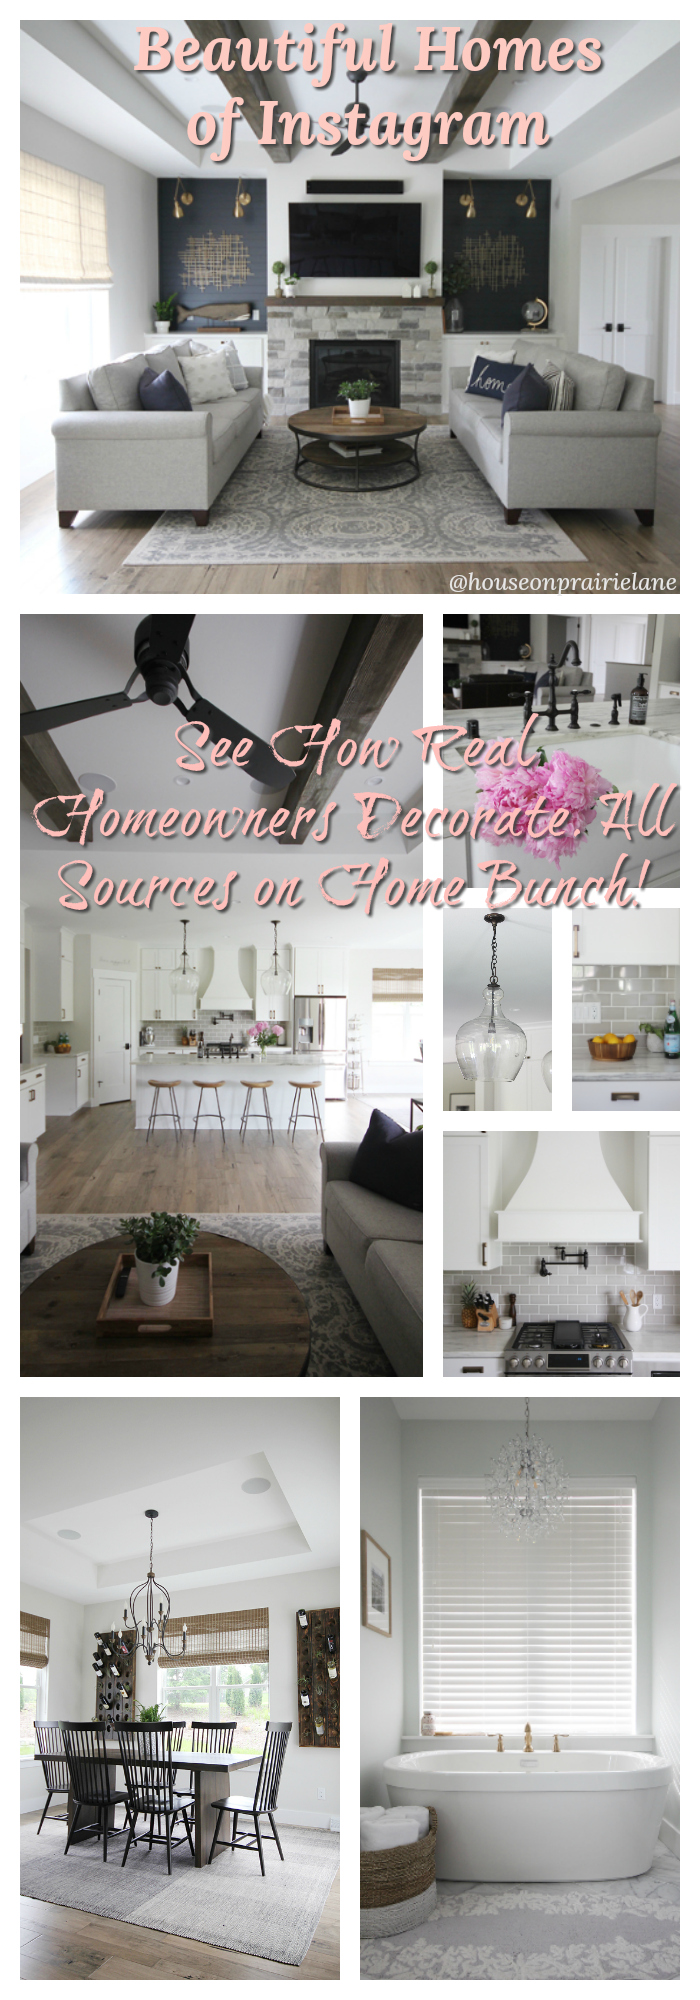 Beautiful Homes of Instagram See How Real Homeowners Decorate All Sources on Home Bunch Beautiful Homes of Instagram Beautiful Homes of Instagram #BeautifulHomes #Instagram